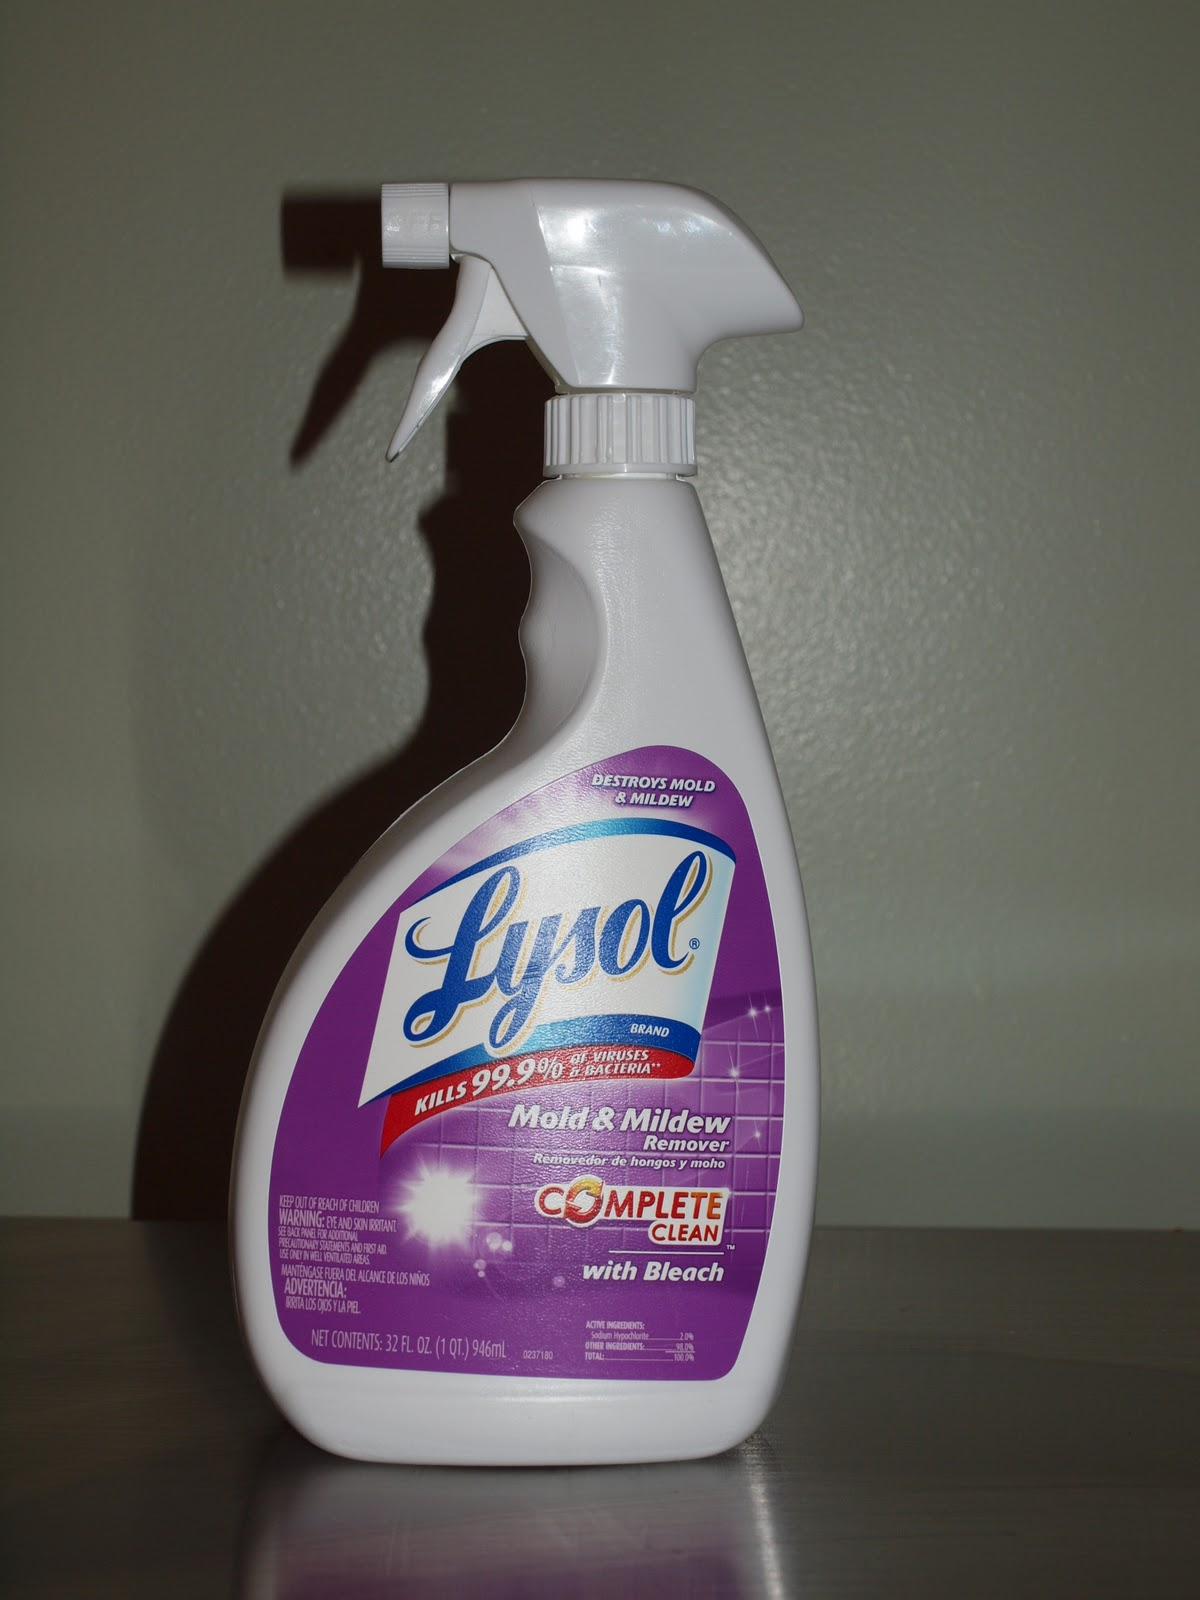 Best Bathroom Cleaner For Mold And Mildew 28 Images Wet Forget Indoor Mold Mildew